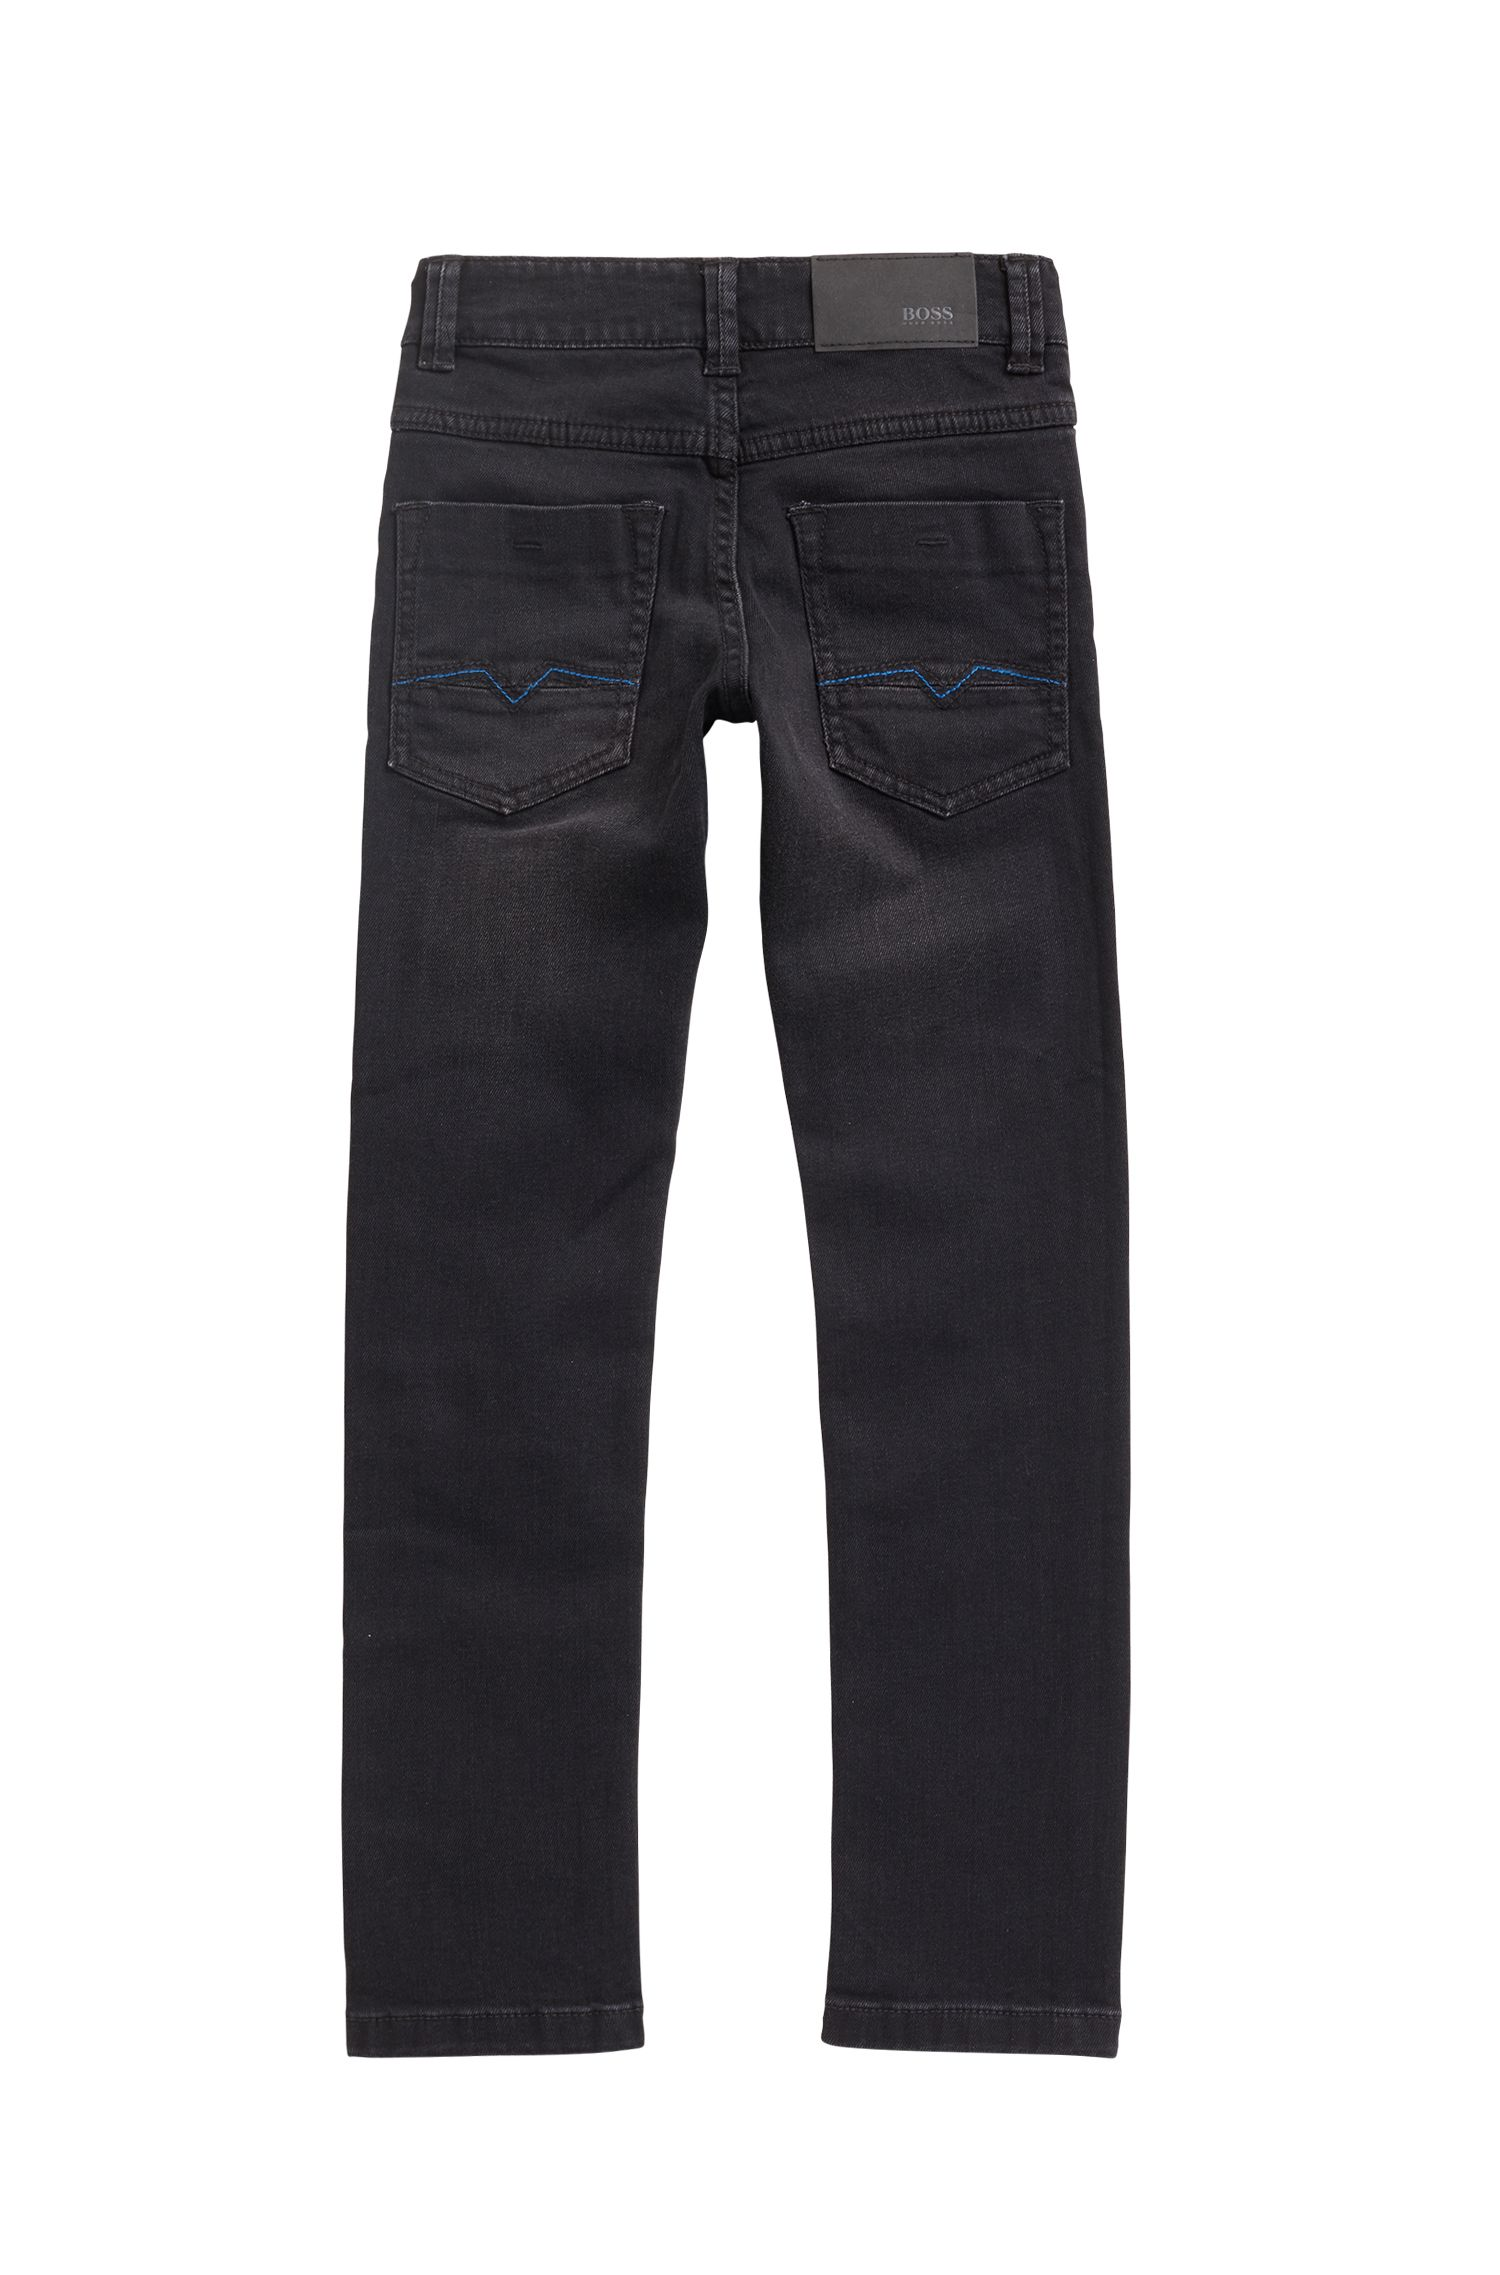 Jean pour enfant Regular Fit en denim stretch noir, à la finition camouflage, Noir